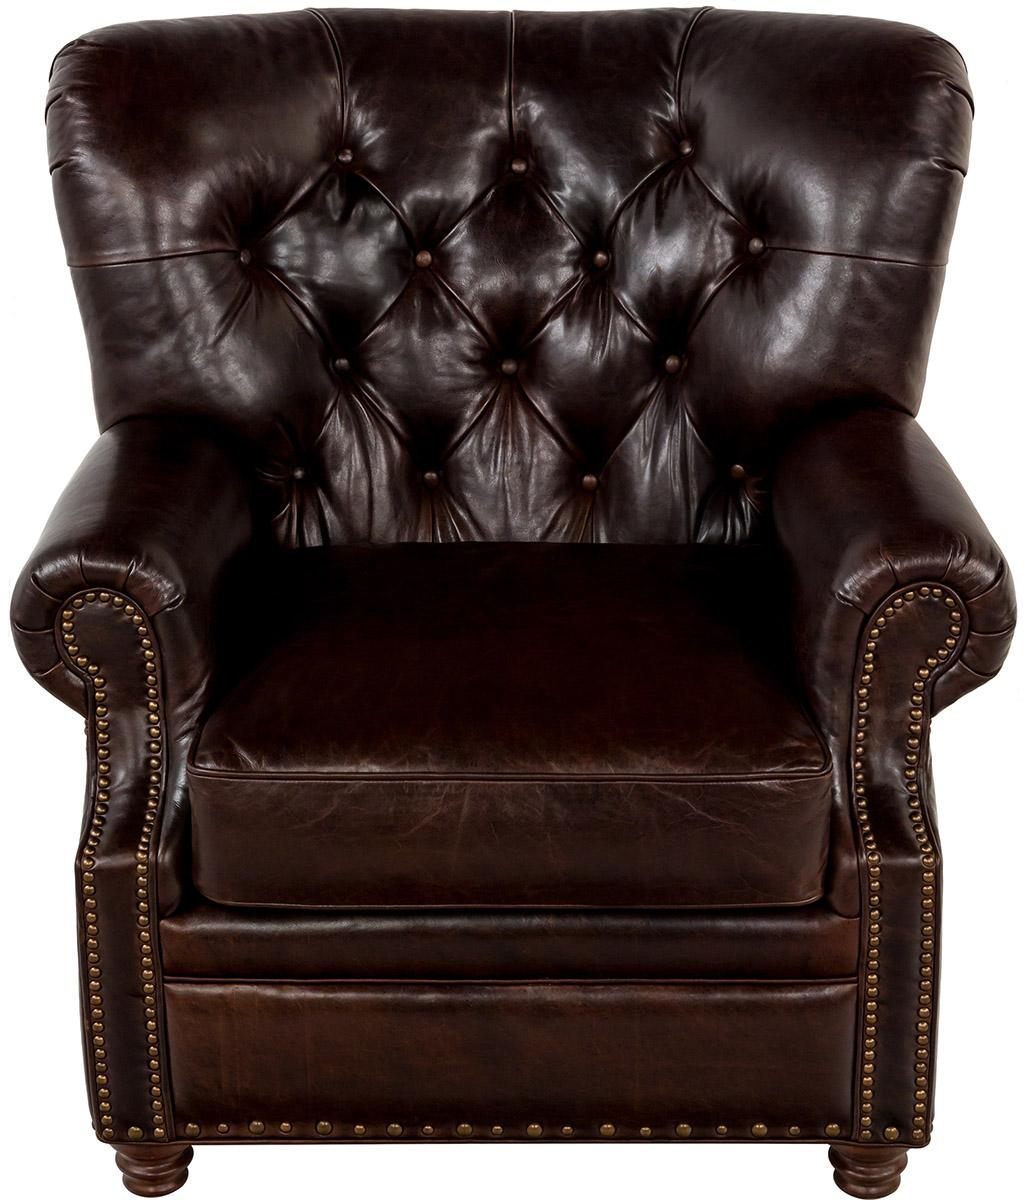 Tufted Leather Chair Traditional Leather Tufted Nailhead Armchair Safavieh